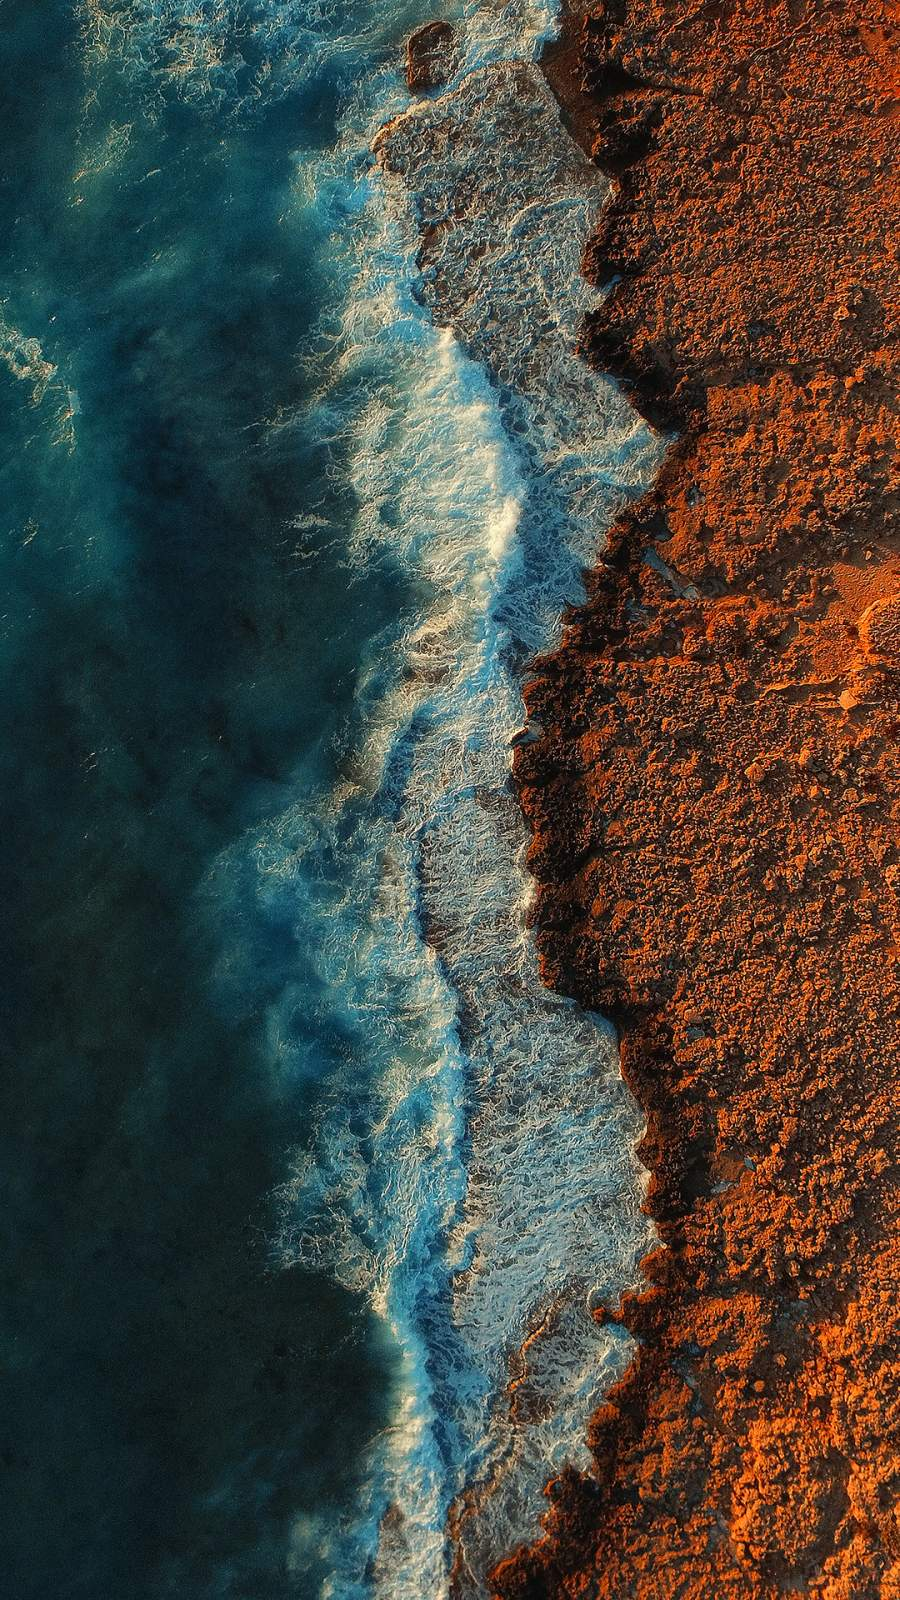 Beach Aerial View Wallpaper